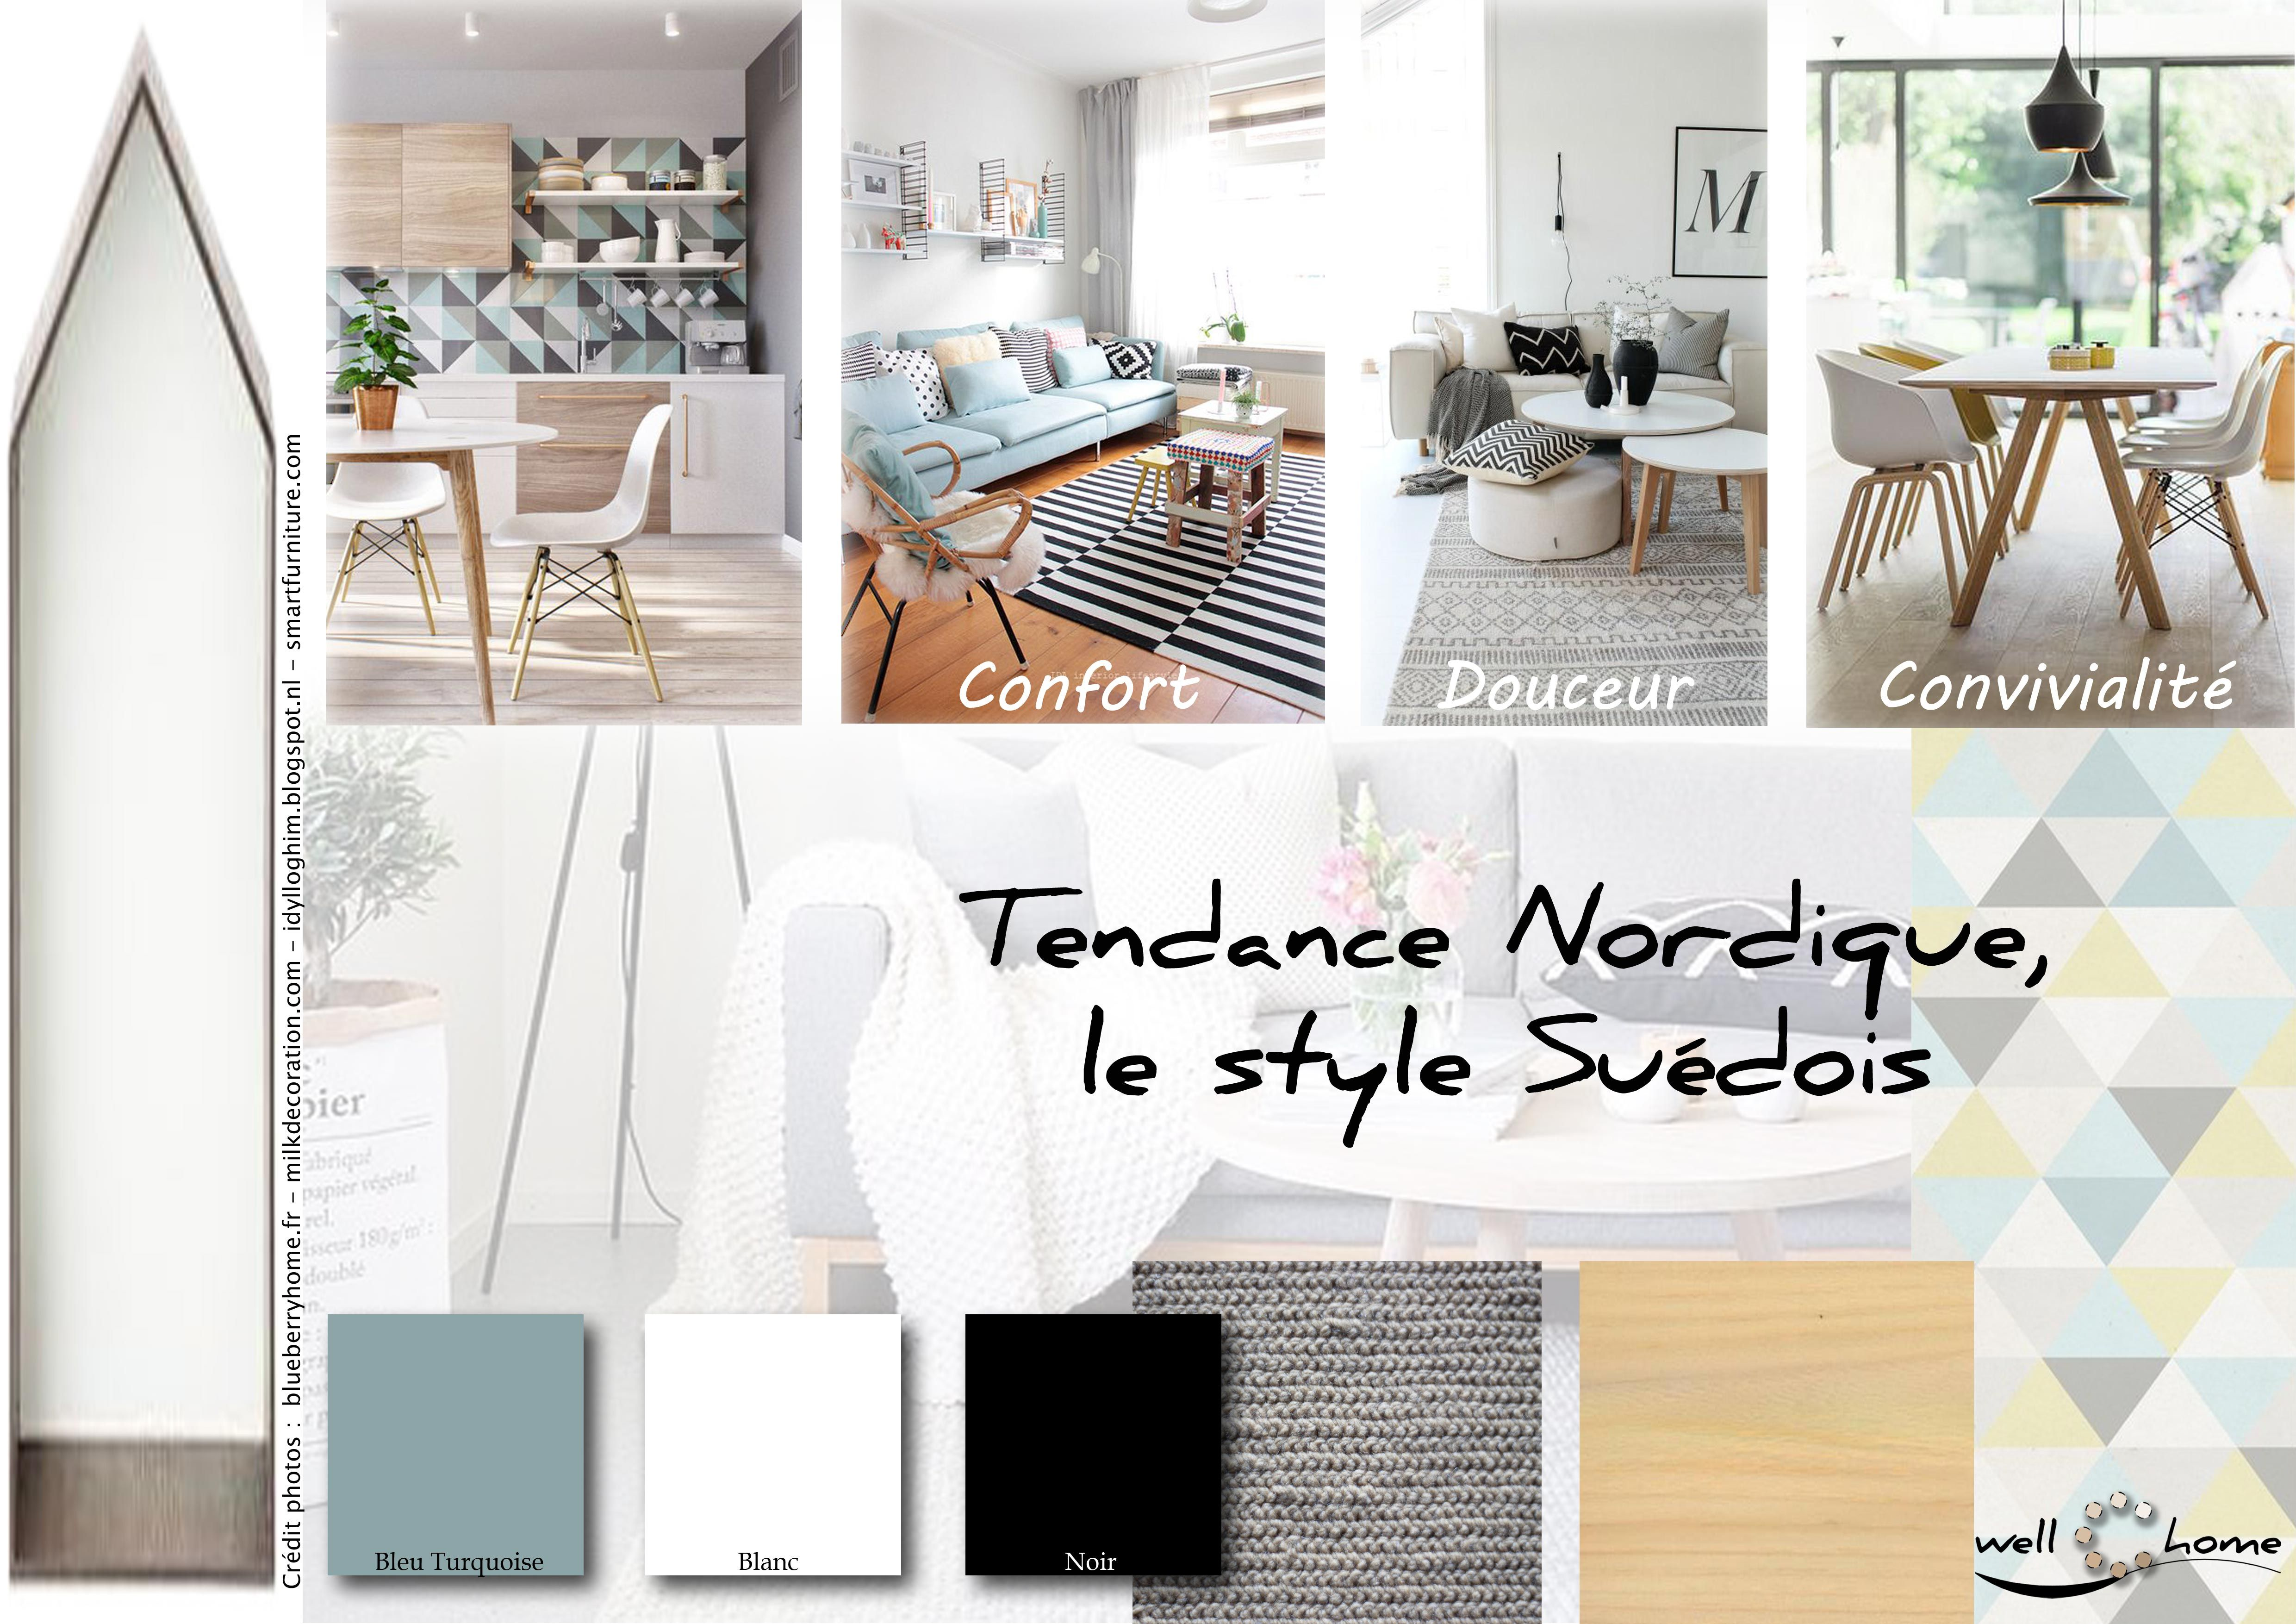 moodboard d co planche d 39 ambiance tendance nordique. Black Bedroom Furniture Sets. Home Design Ideas